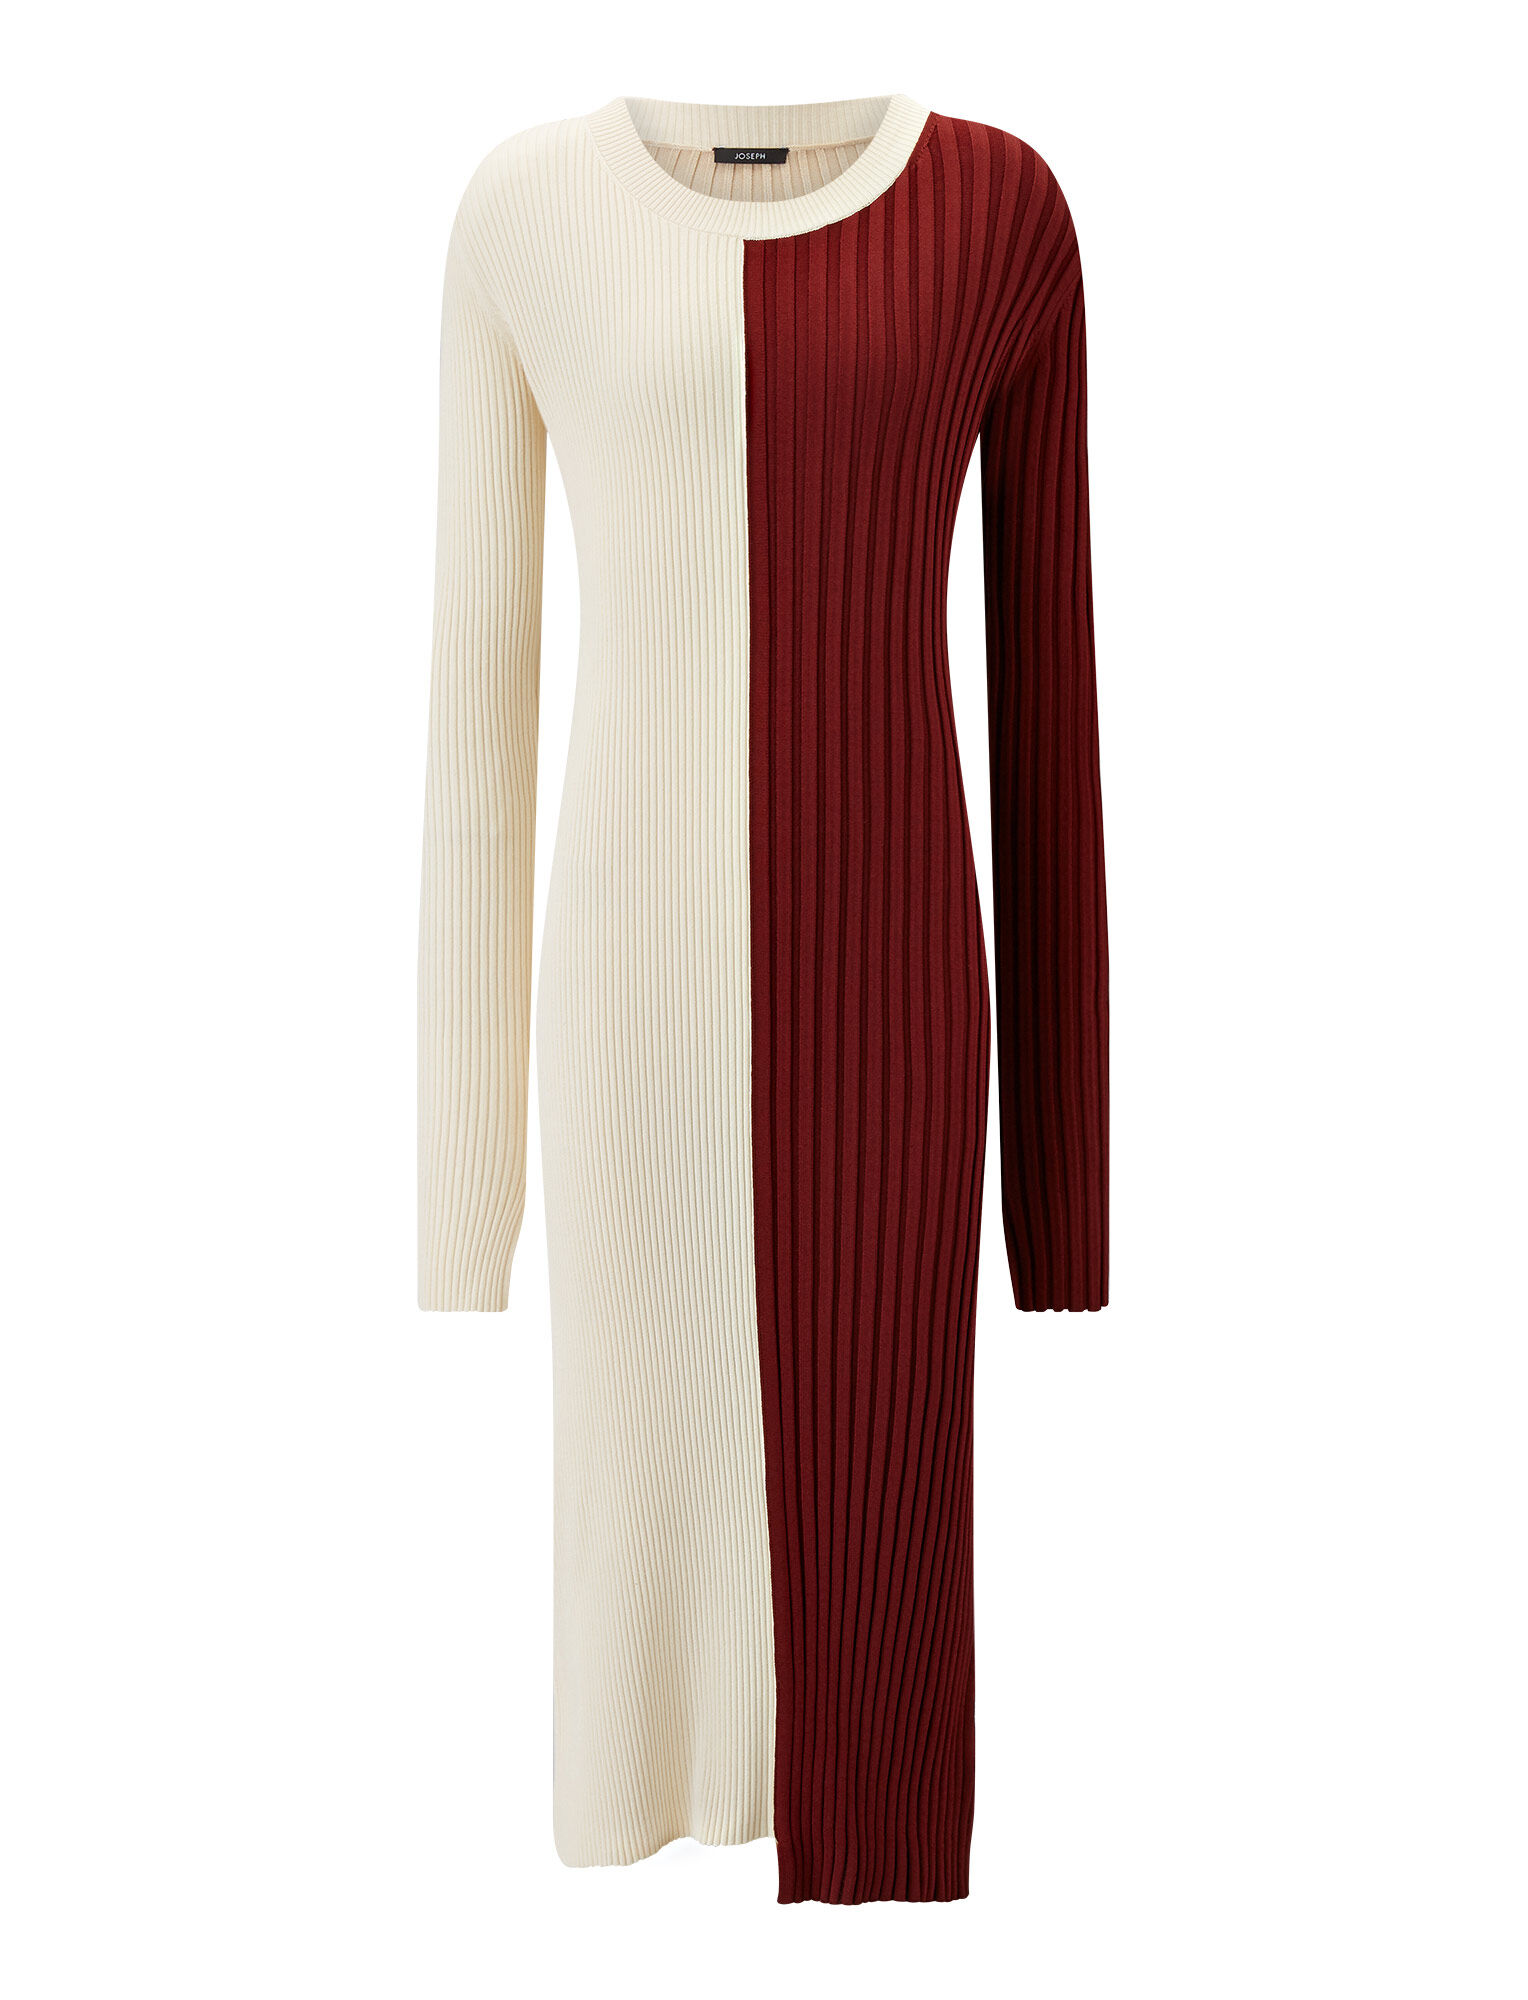 Joseph, Diane Mix Rib Dress, in MERLOT COMBO